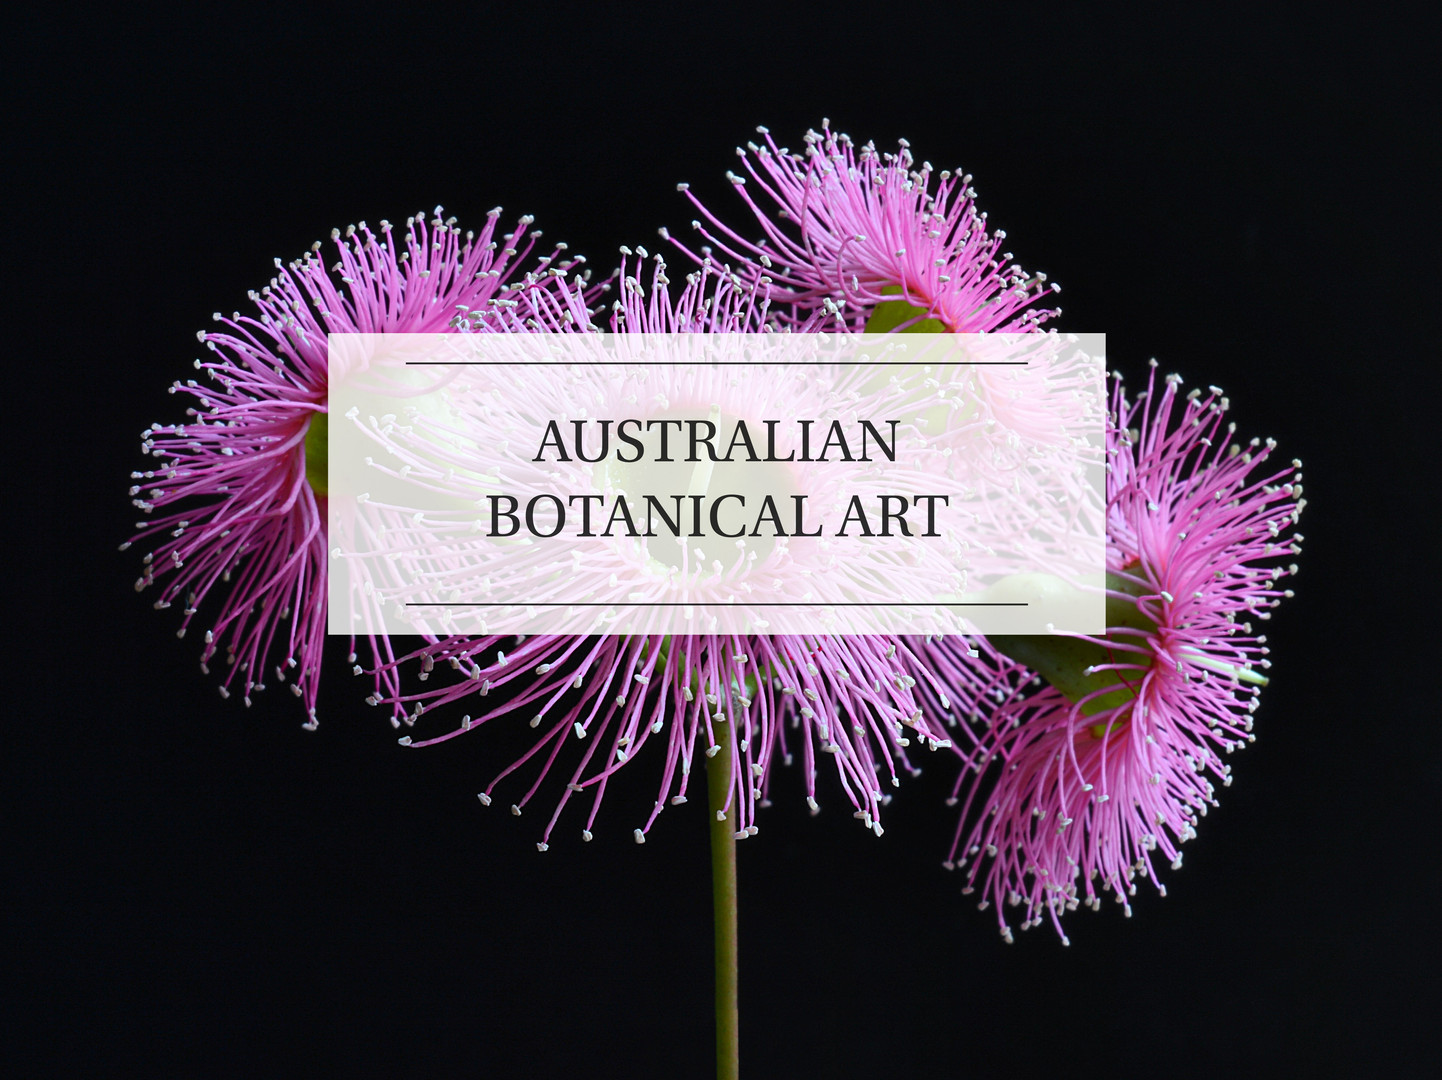 AUSTRALIAN BOTANICAL ART